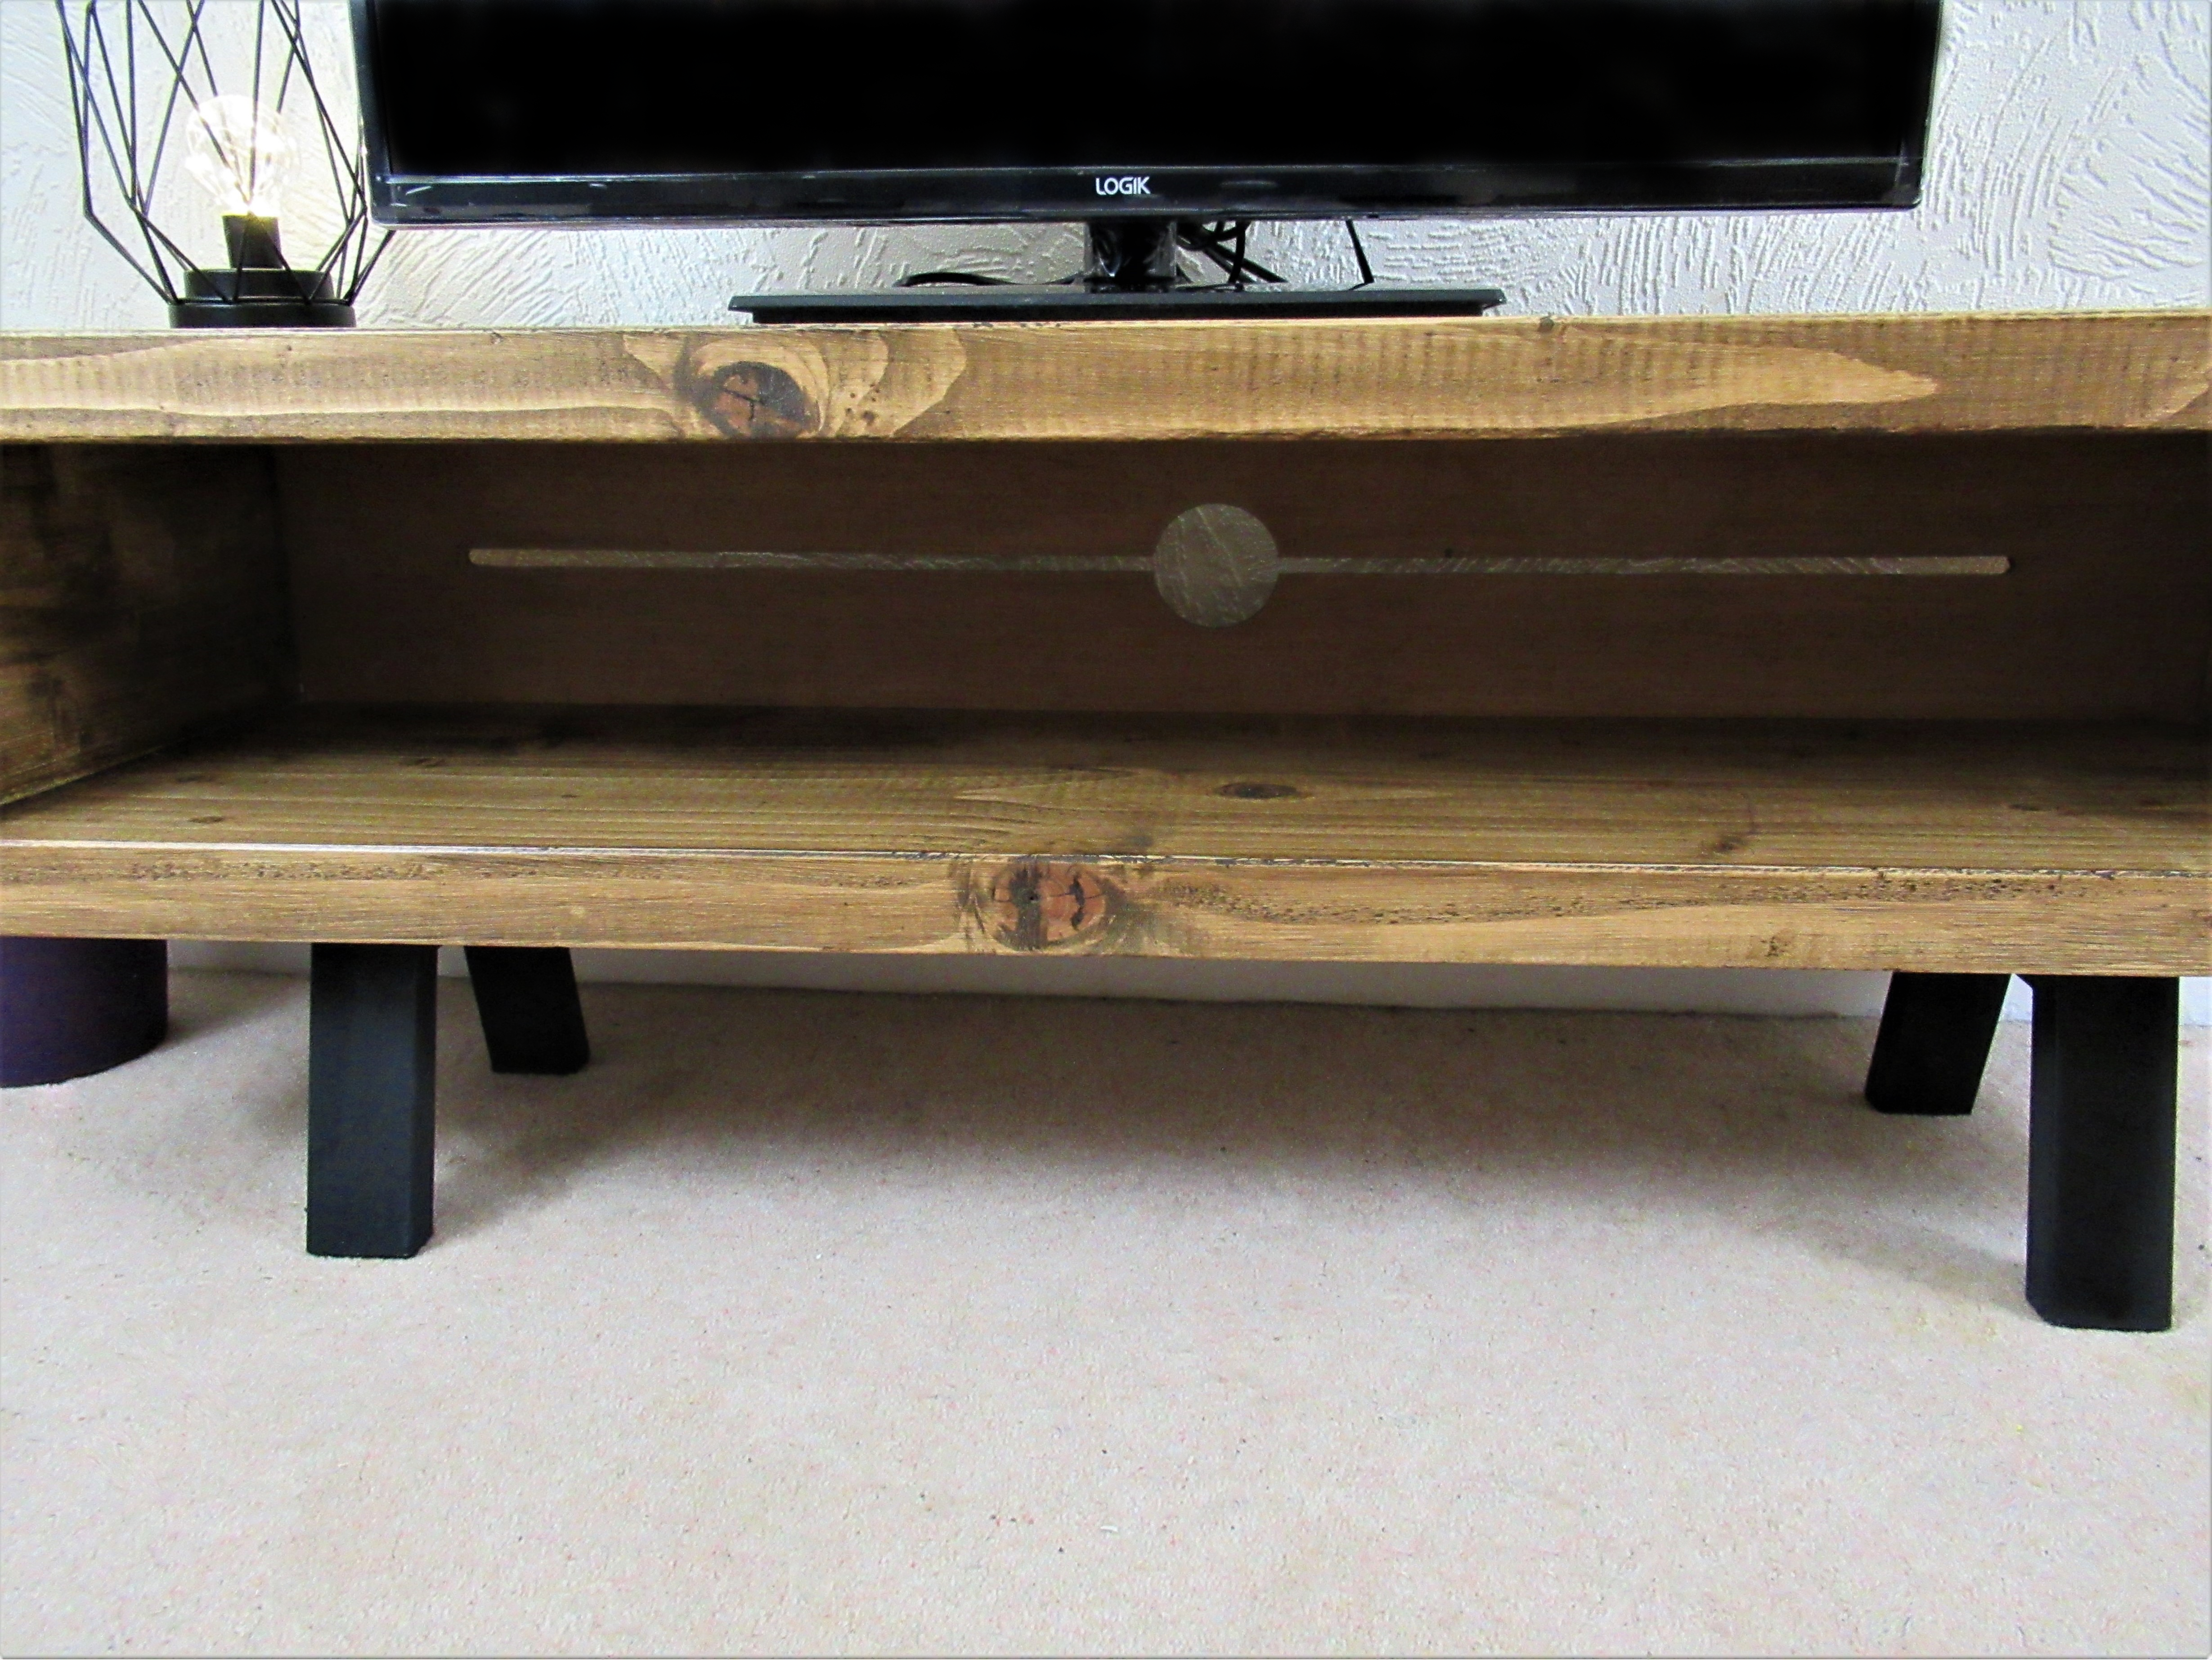 570 Tv Stand Enclosed Back With Cable Tidy Large Sizes Up To 65 Inch Tv S Redcottage